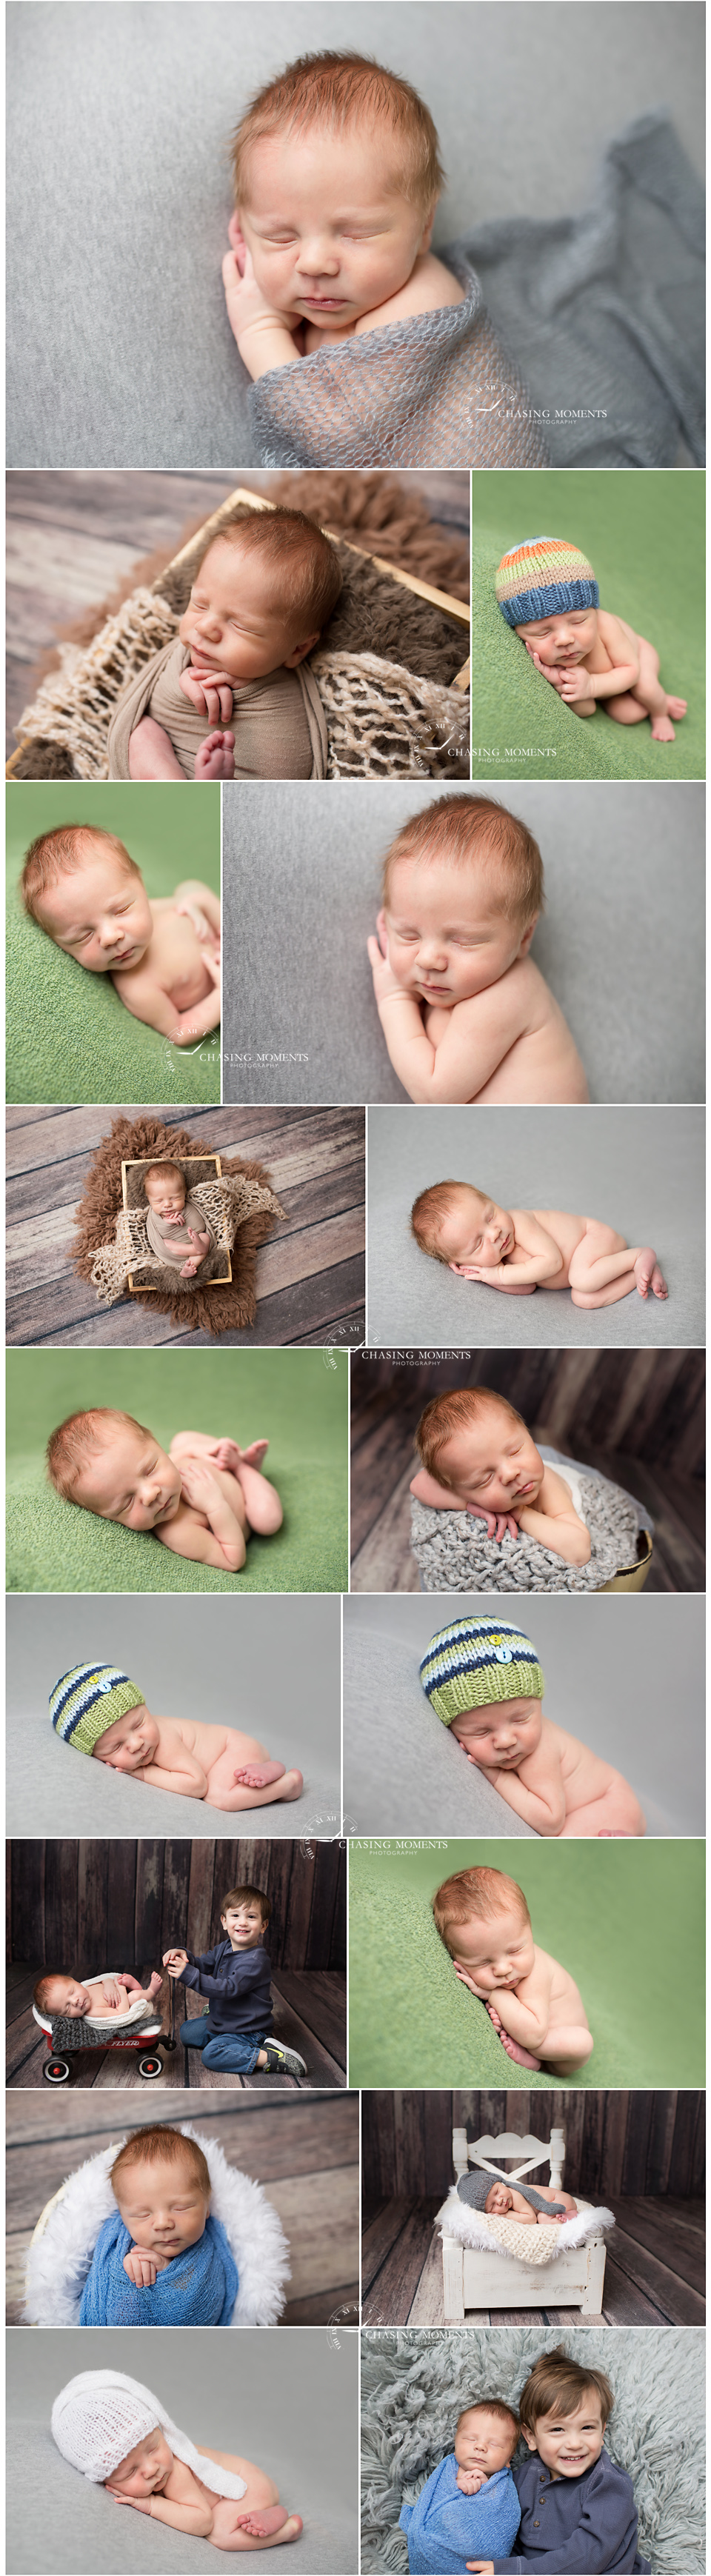 northern virginia newborn photographer_booking 2018_2